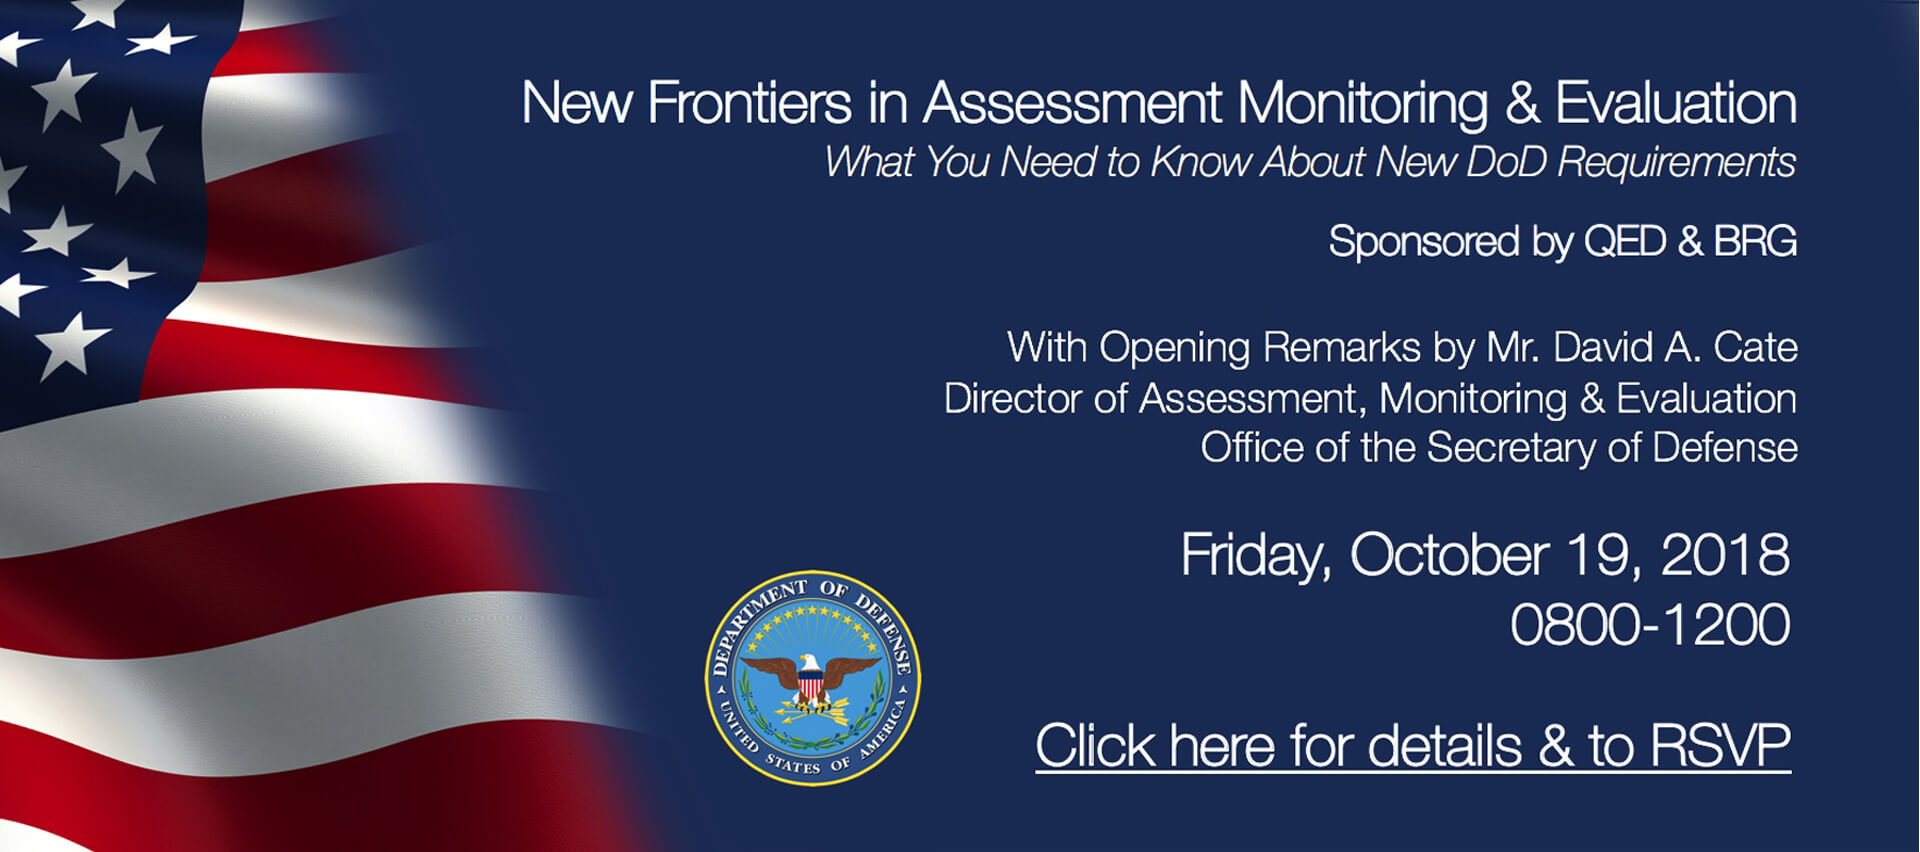 new frontiers in Assesment monitoring and evaluation